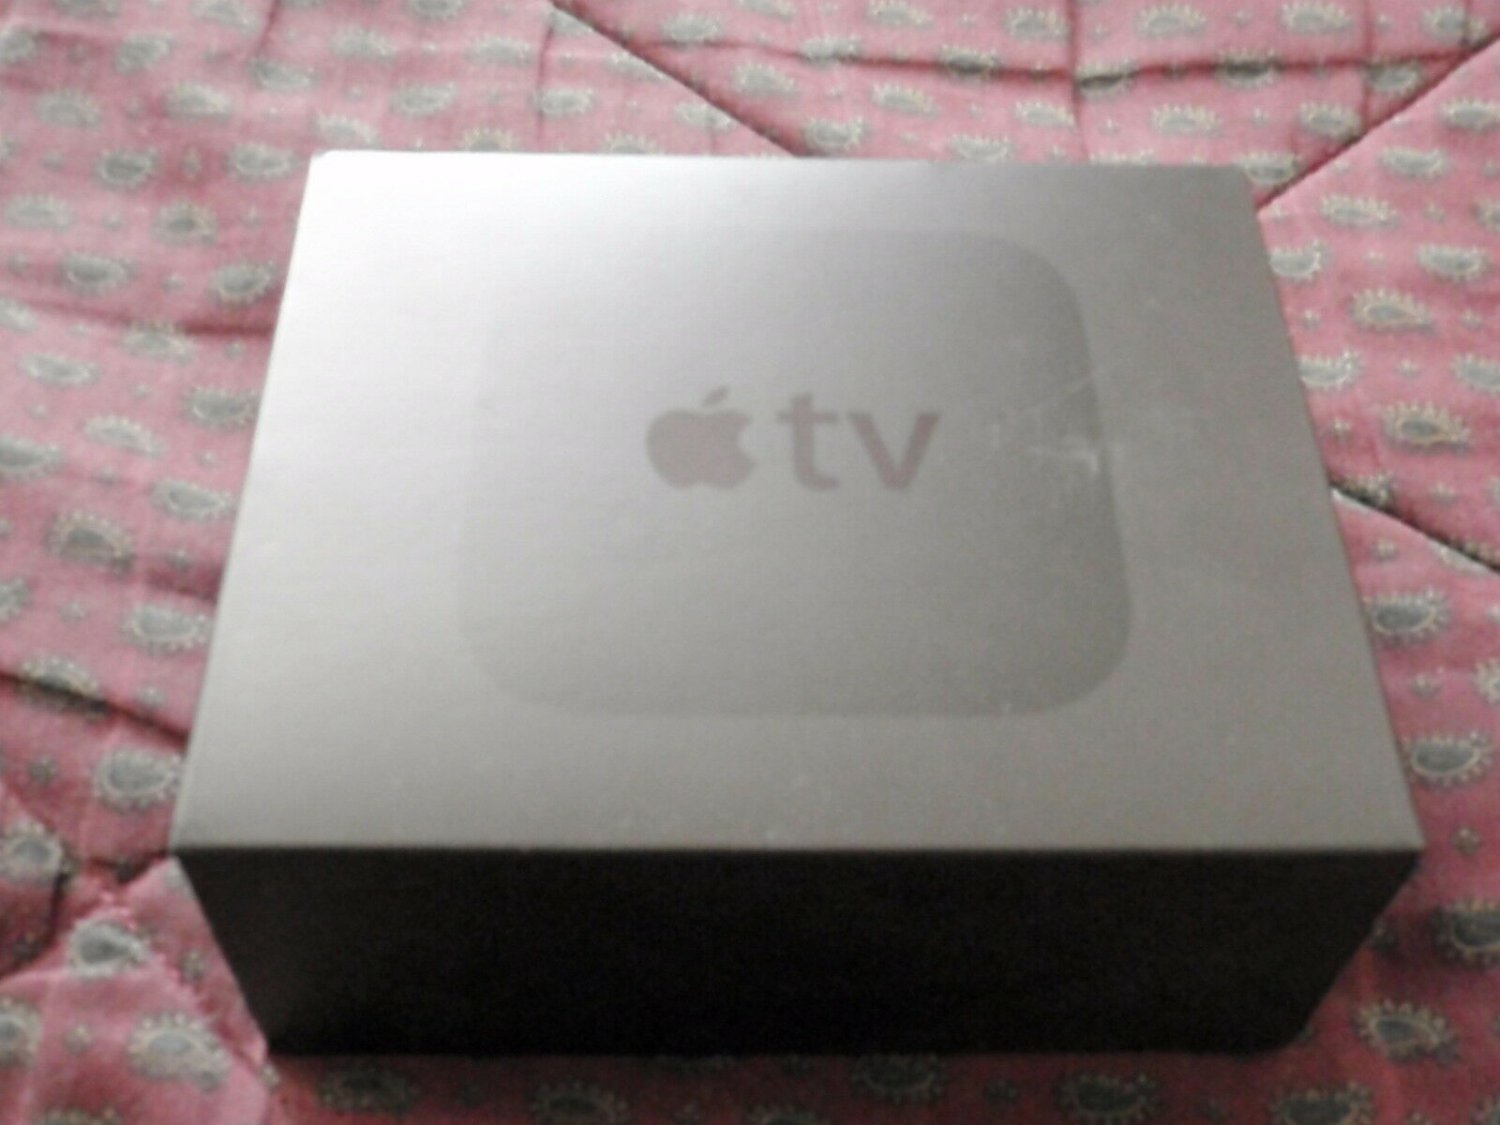 EMPTY BOX for APPLE TV (4th Generation) 64GB HD  - EMPTY BOX ONLY